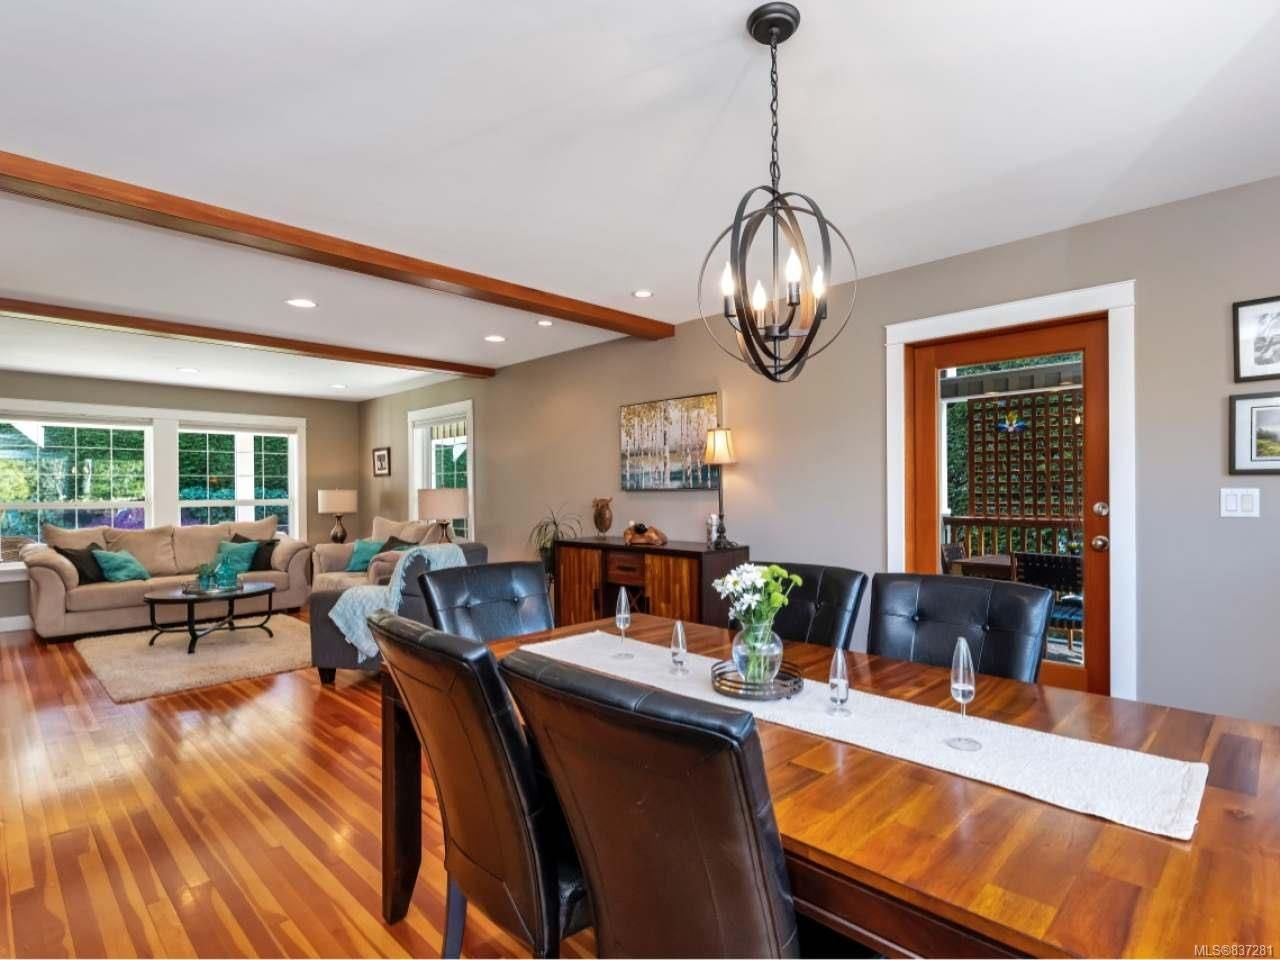 Photo 3: Photos: 925 Lilmac Rd in MILL BAY: ML Mill Bay House for sale (Malahat & Area)  : MLS®# 837281